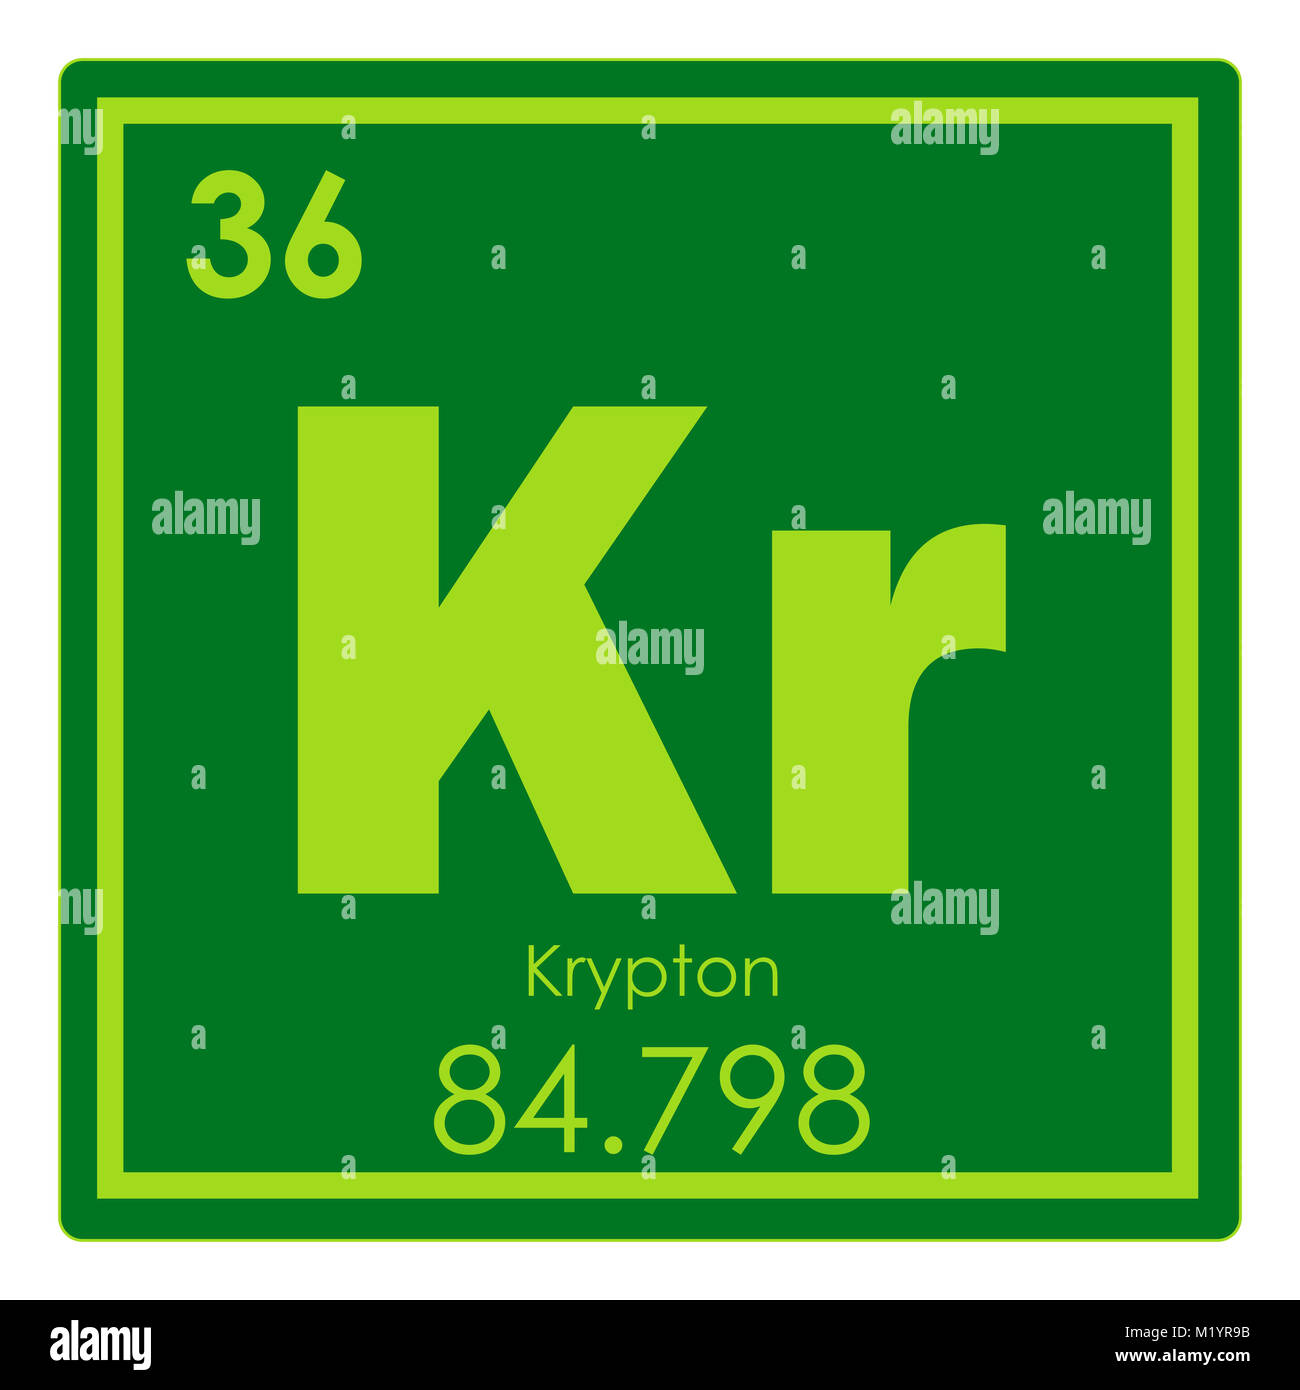 Krypton chemical element periodic table science symbol stock photo krypton chemical element periodic table science symbol buycottarizona